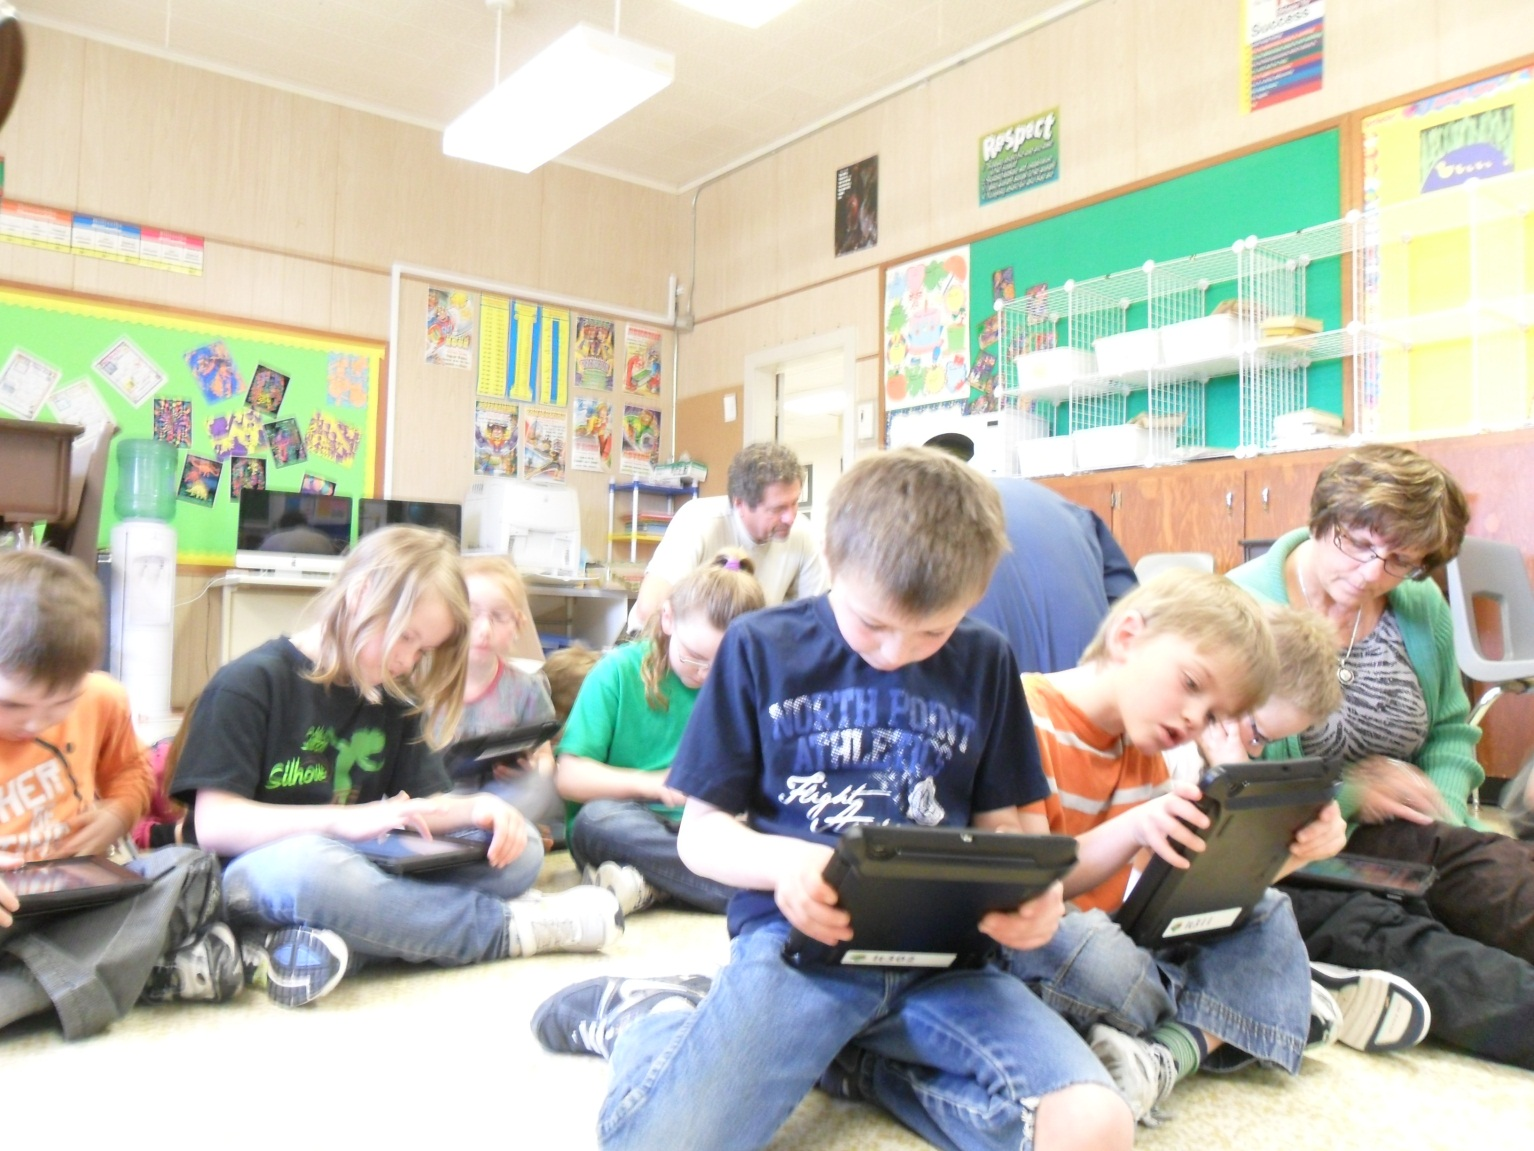 students with iPad in the classroom